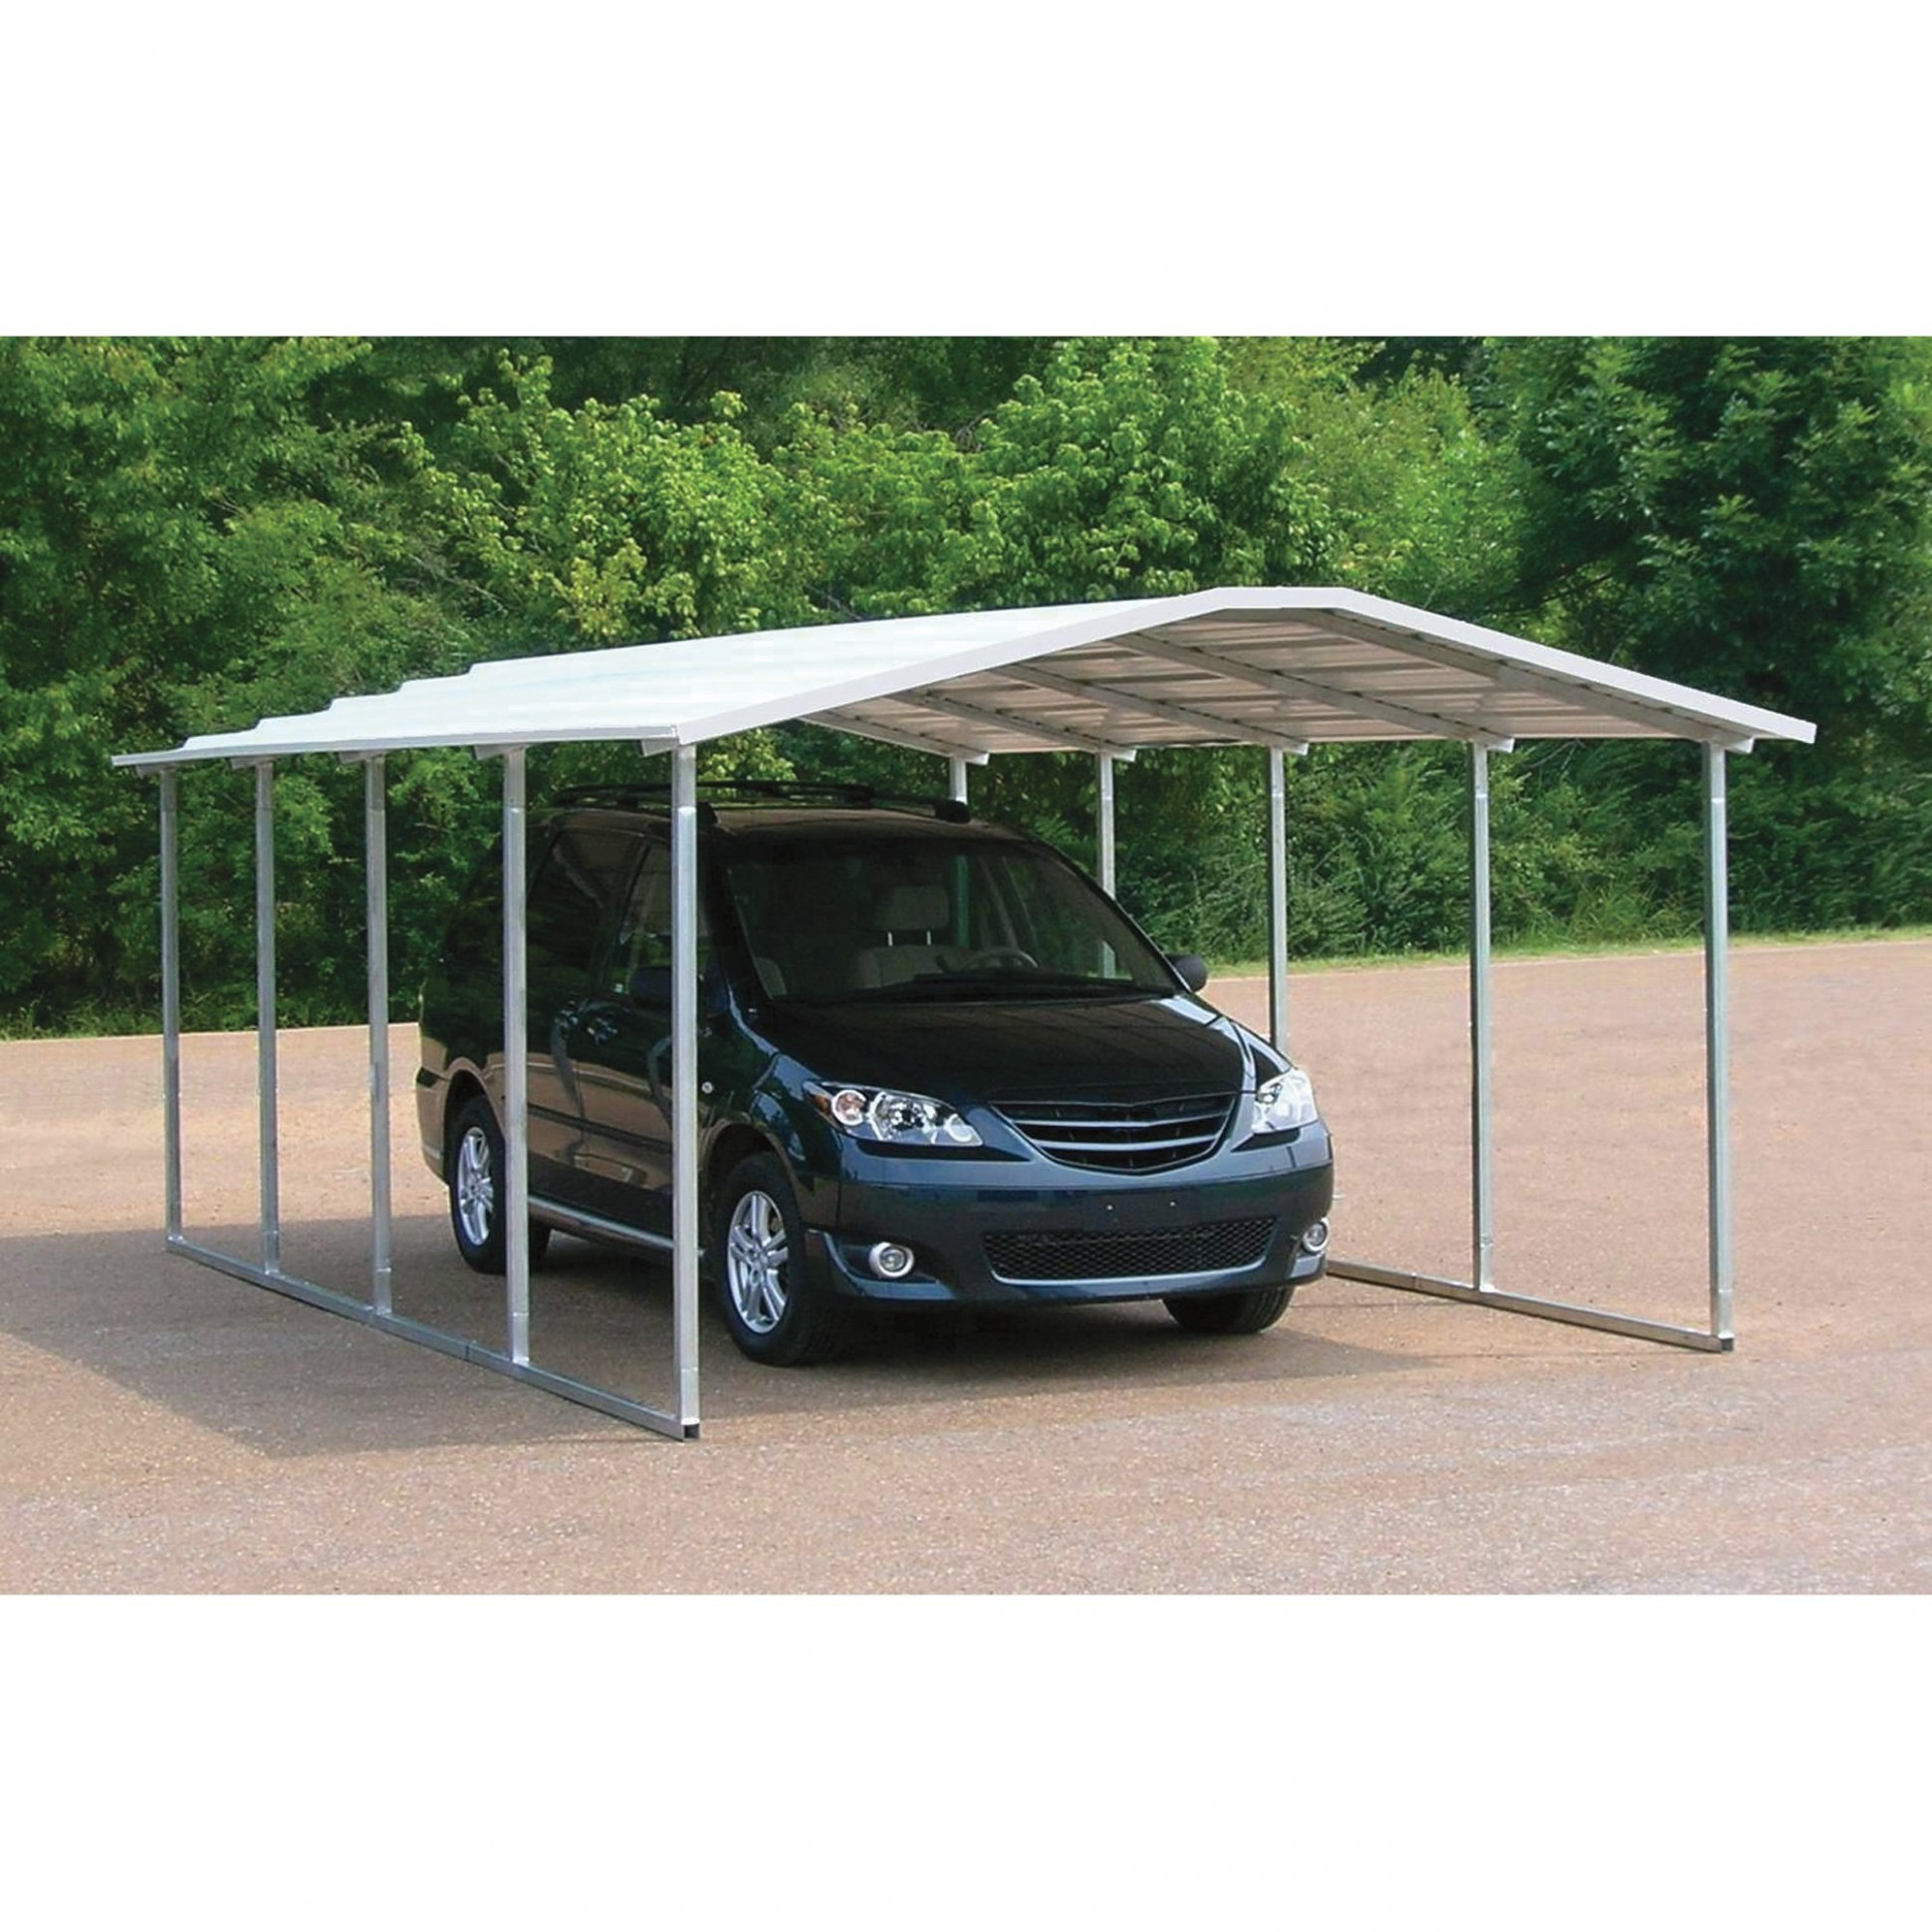 Ten Important Facts That You Should Know About Metal Frame Shelter | metal frame shelter